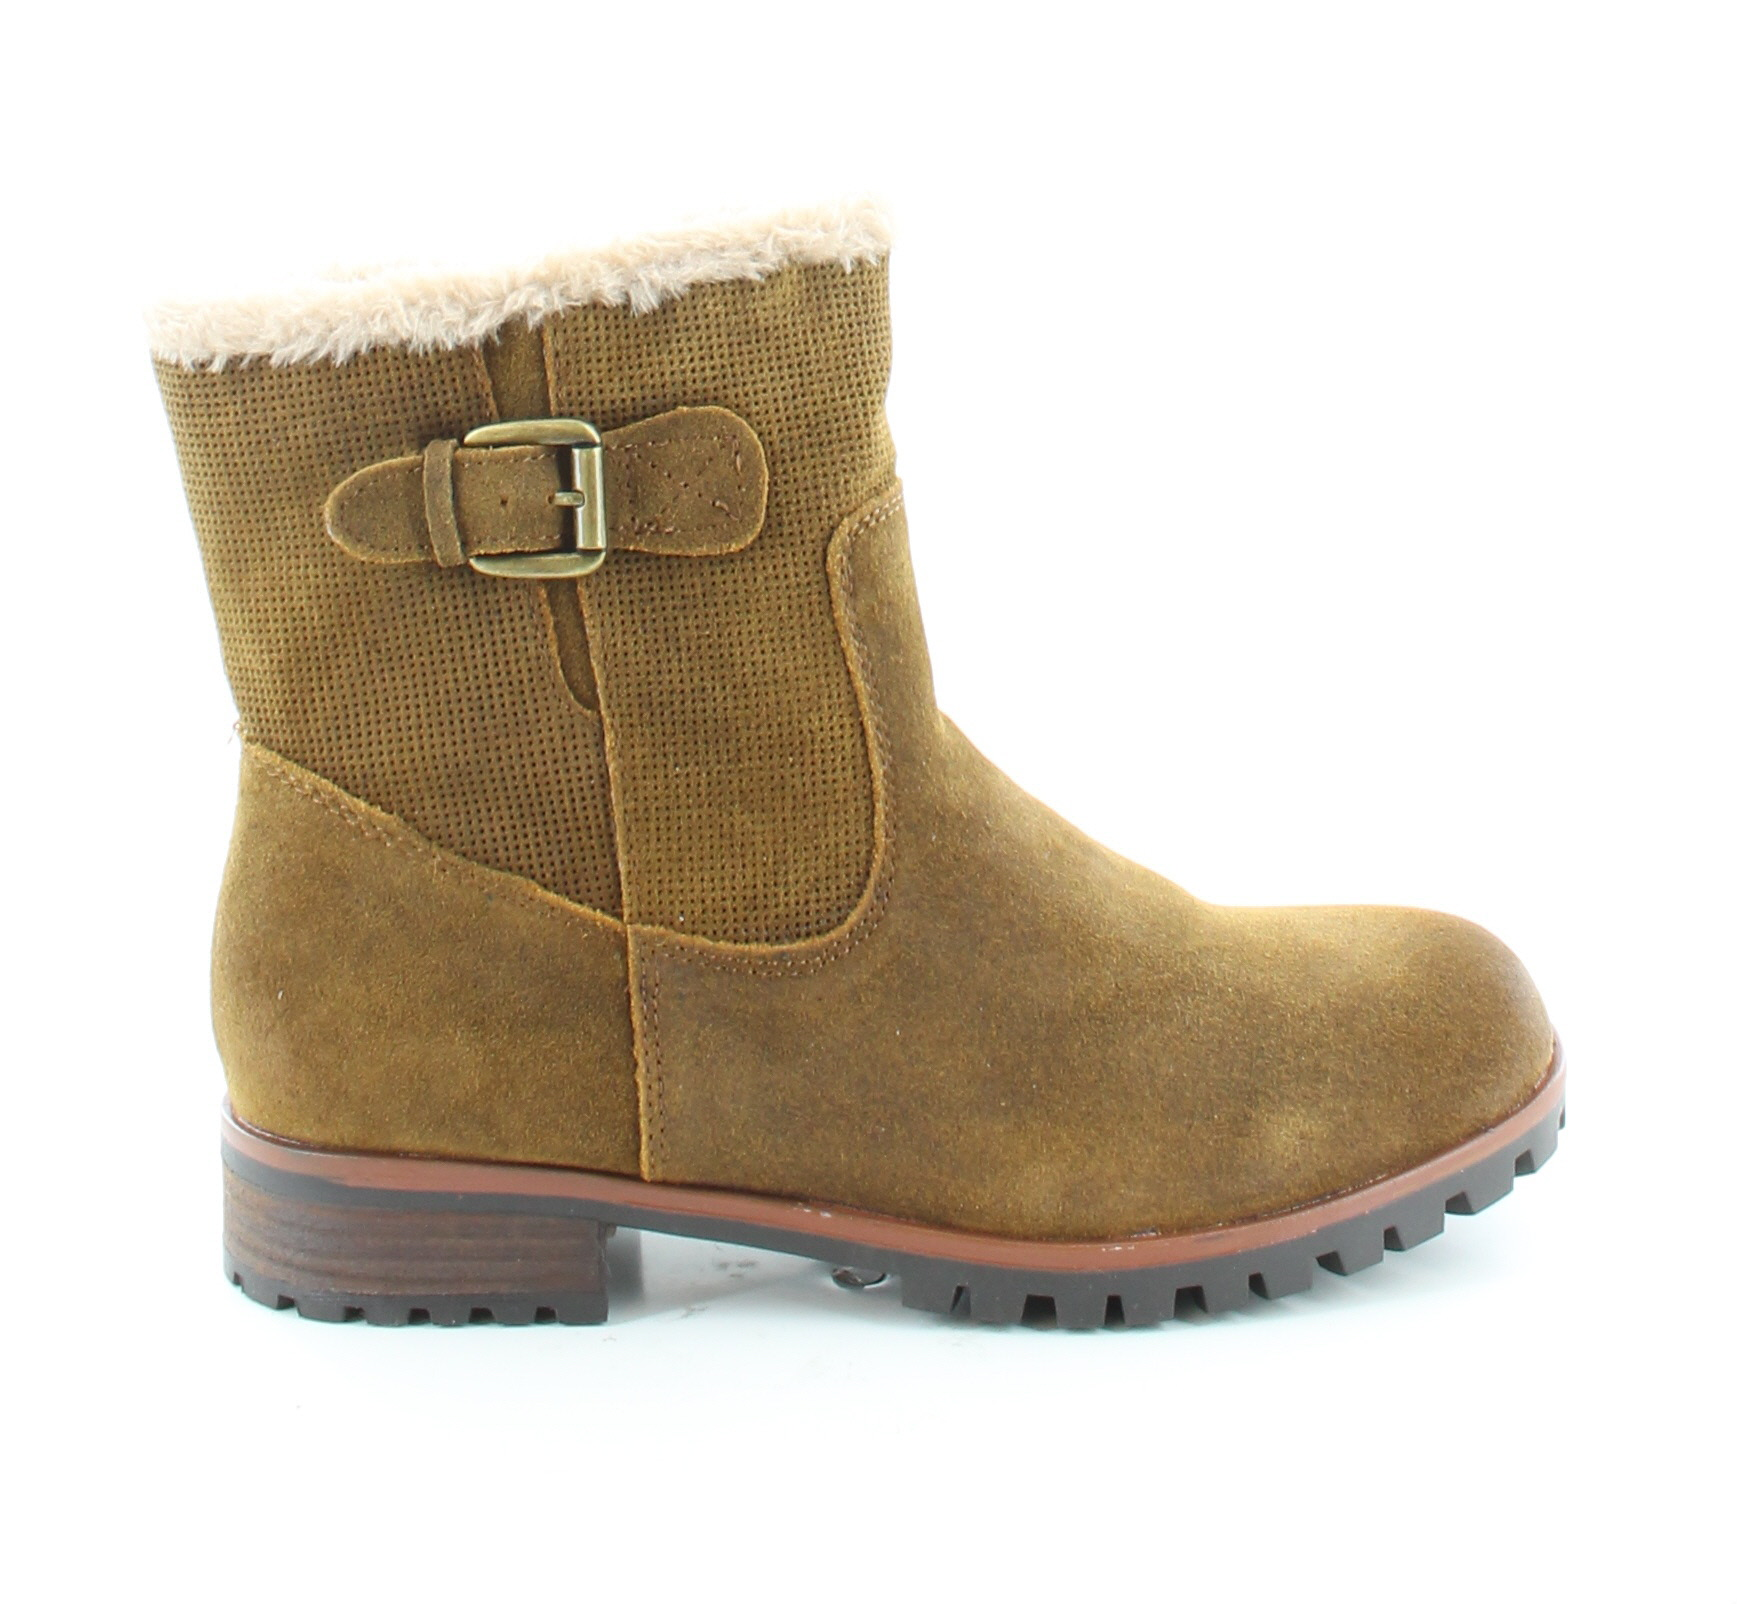 baretraps new fairlee brown womens shoes size 9 m boots